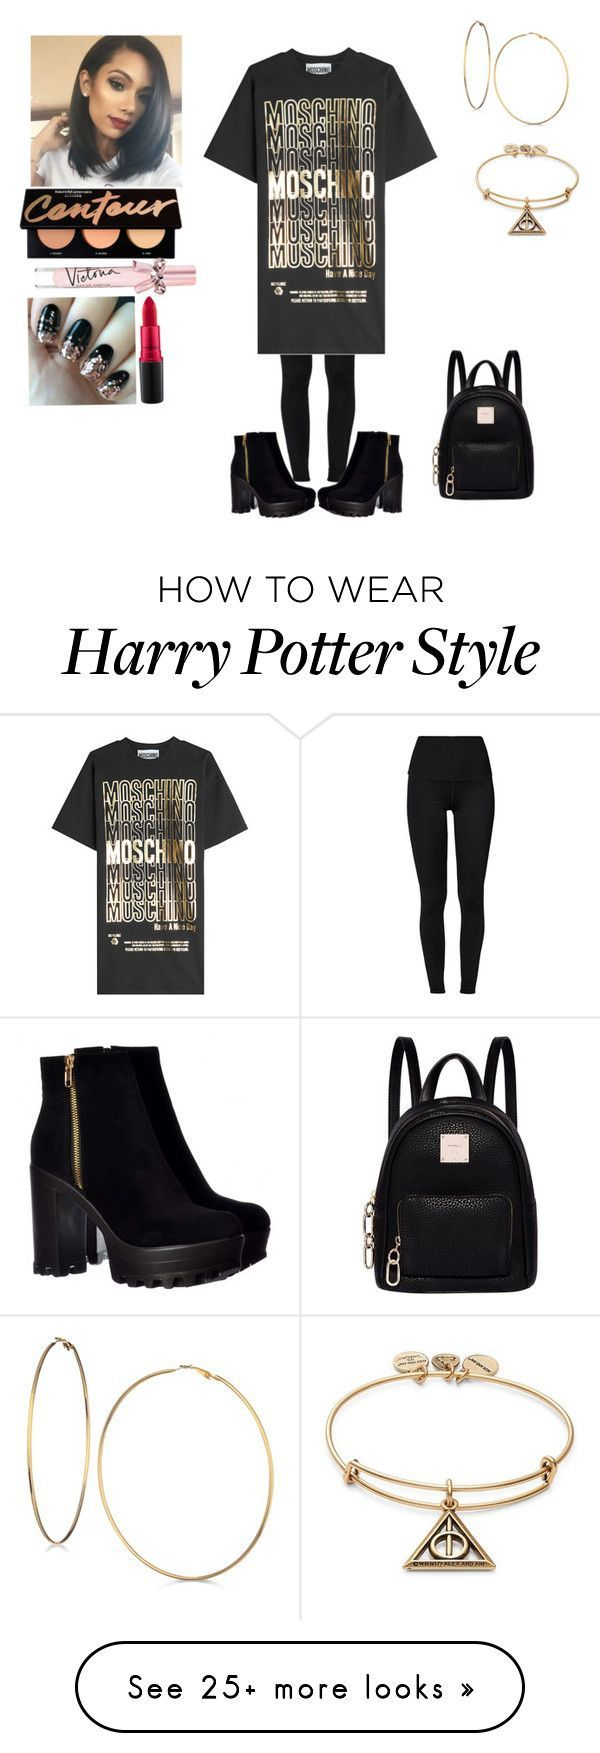 """Moschino shirt dress"" by rebeccadavisblogger on Polyvore featuring Moschino, Fiorelli, GUESS, Alex and Ani, Victoria's Secret and MAC Cosmetics"